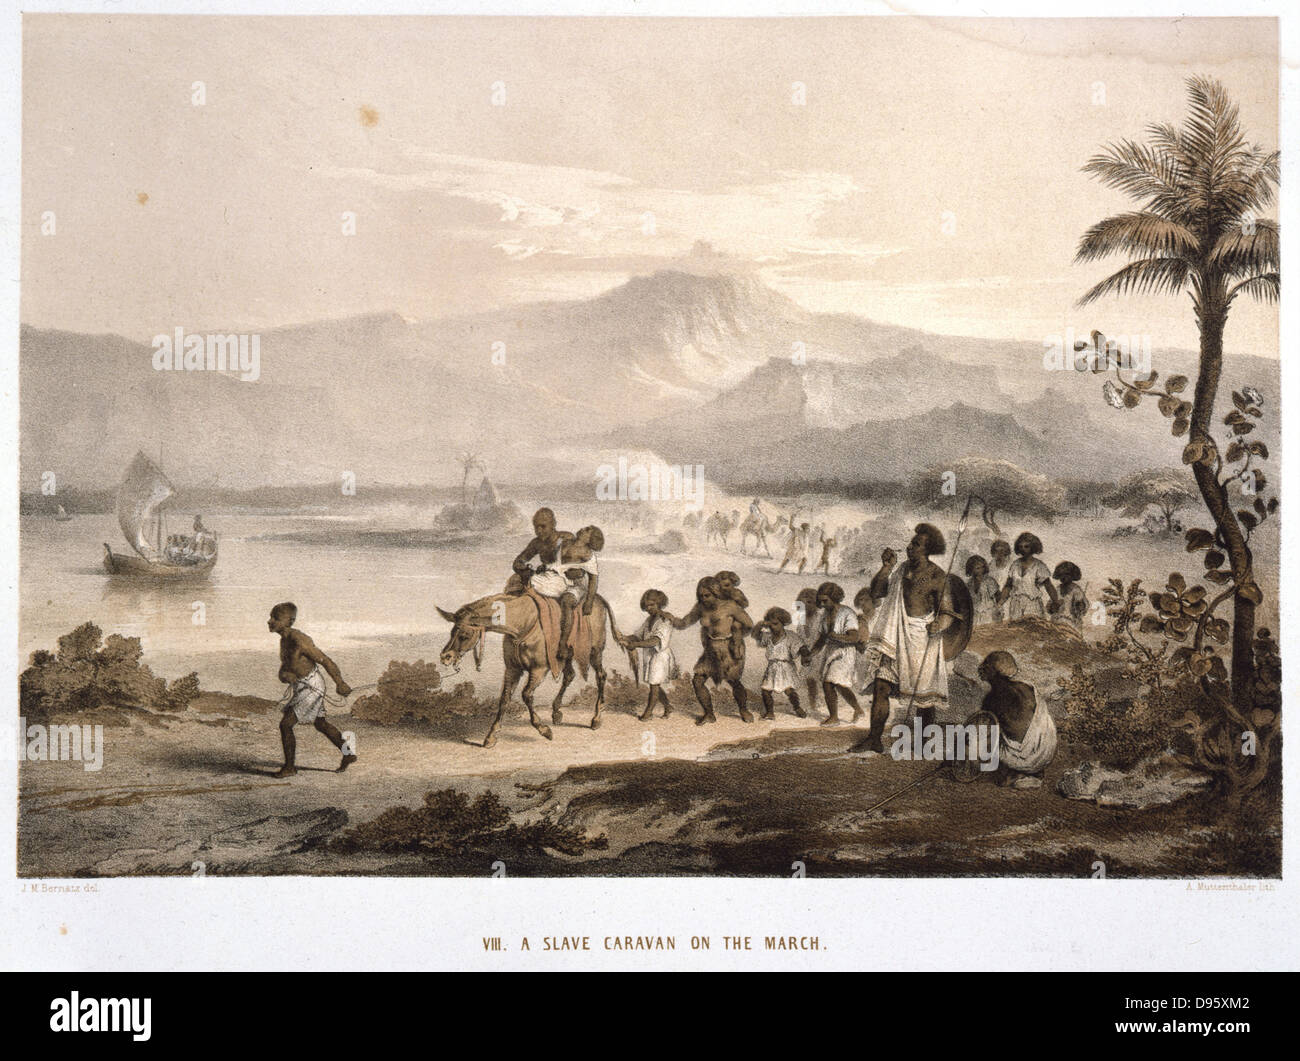 Slave Caravan on the March', Ethiopia. Tinted lithograph after drawing by JM Bernatz, published London, 1852. - Stock Image